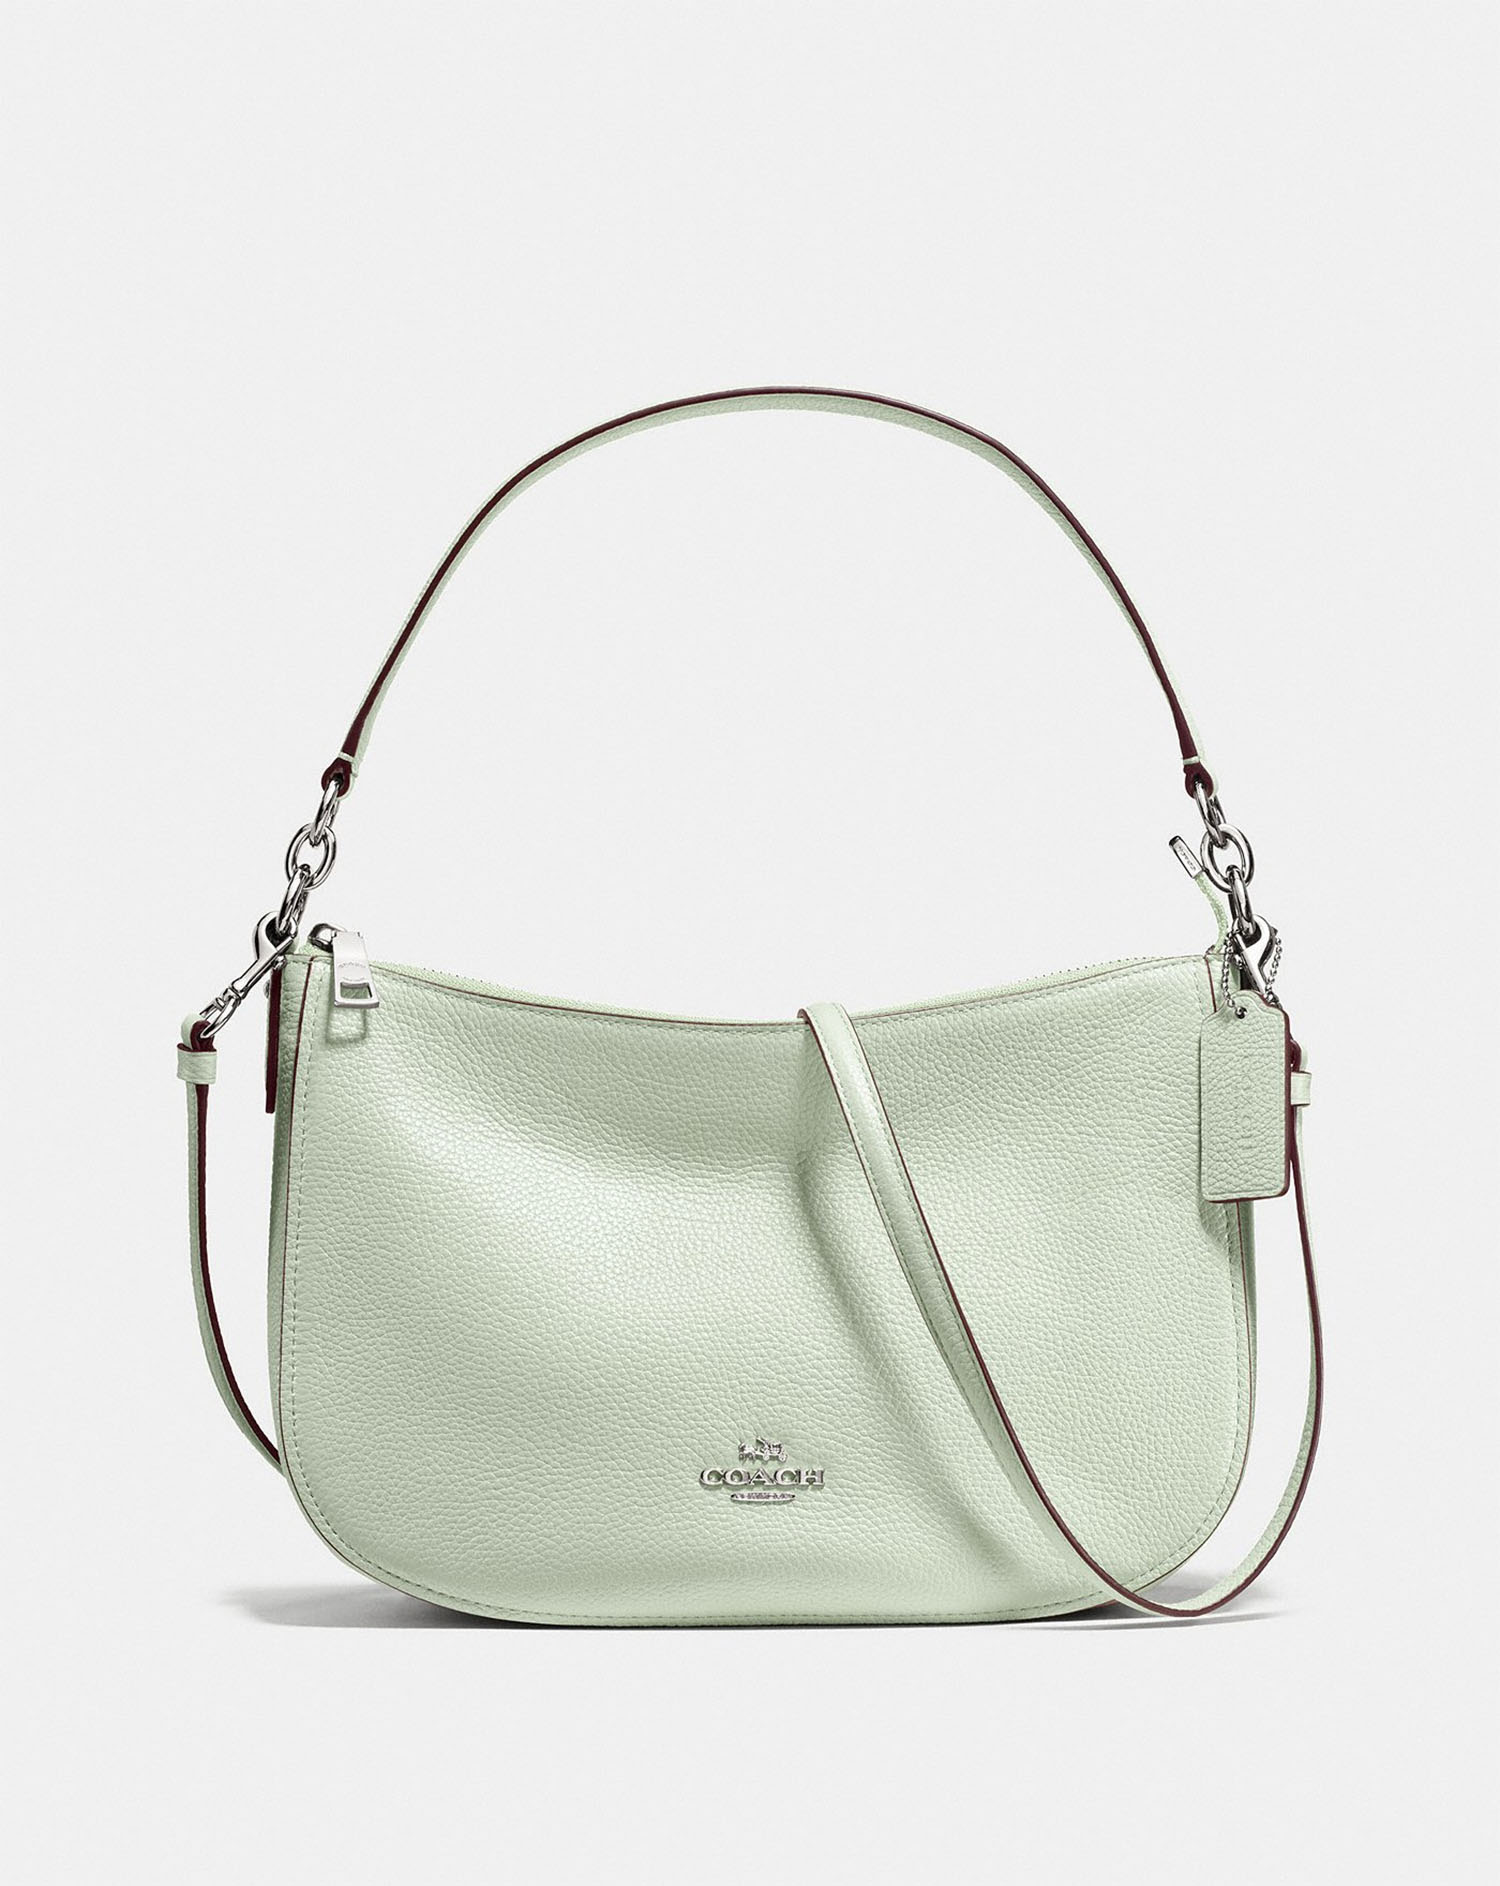 d8d7c23ee73e9 5 Bags We re Obsessed With From Coach s 50% Off Summer Sale